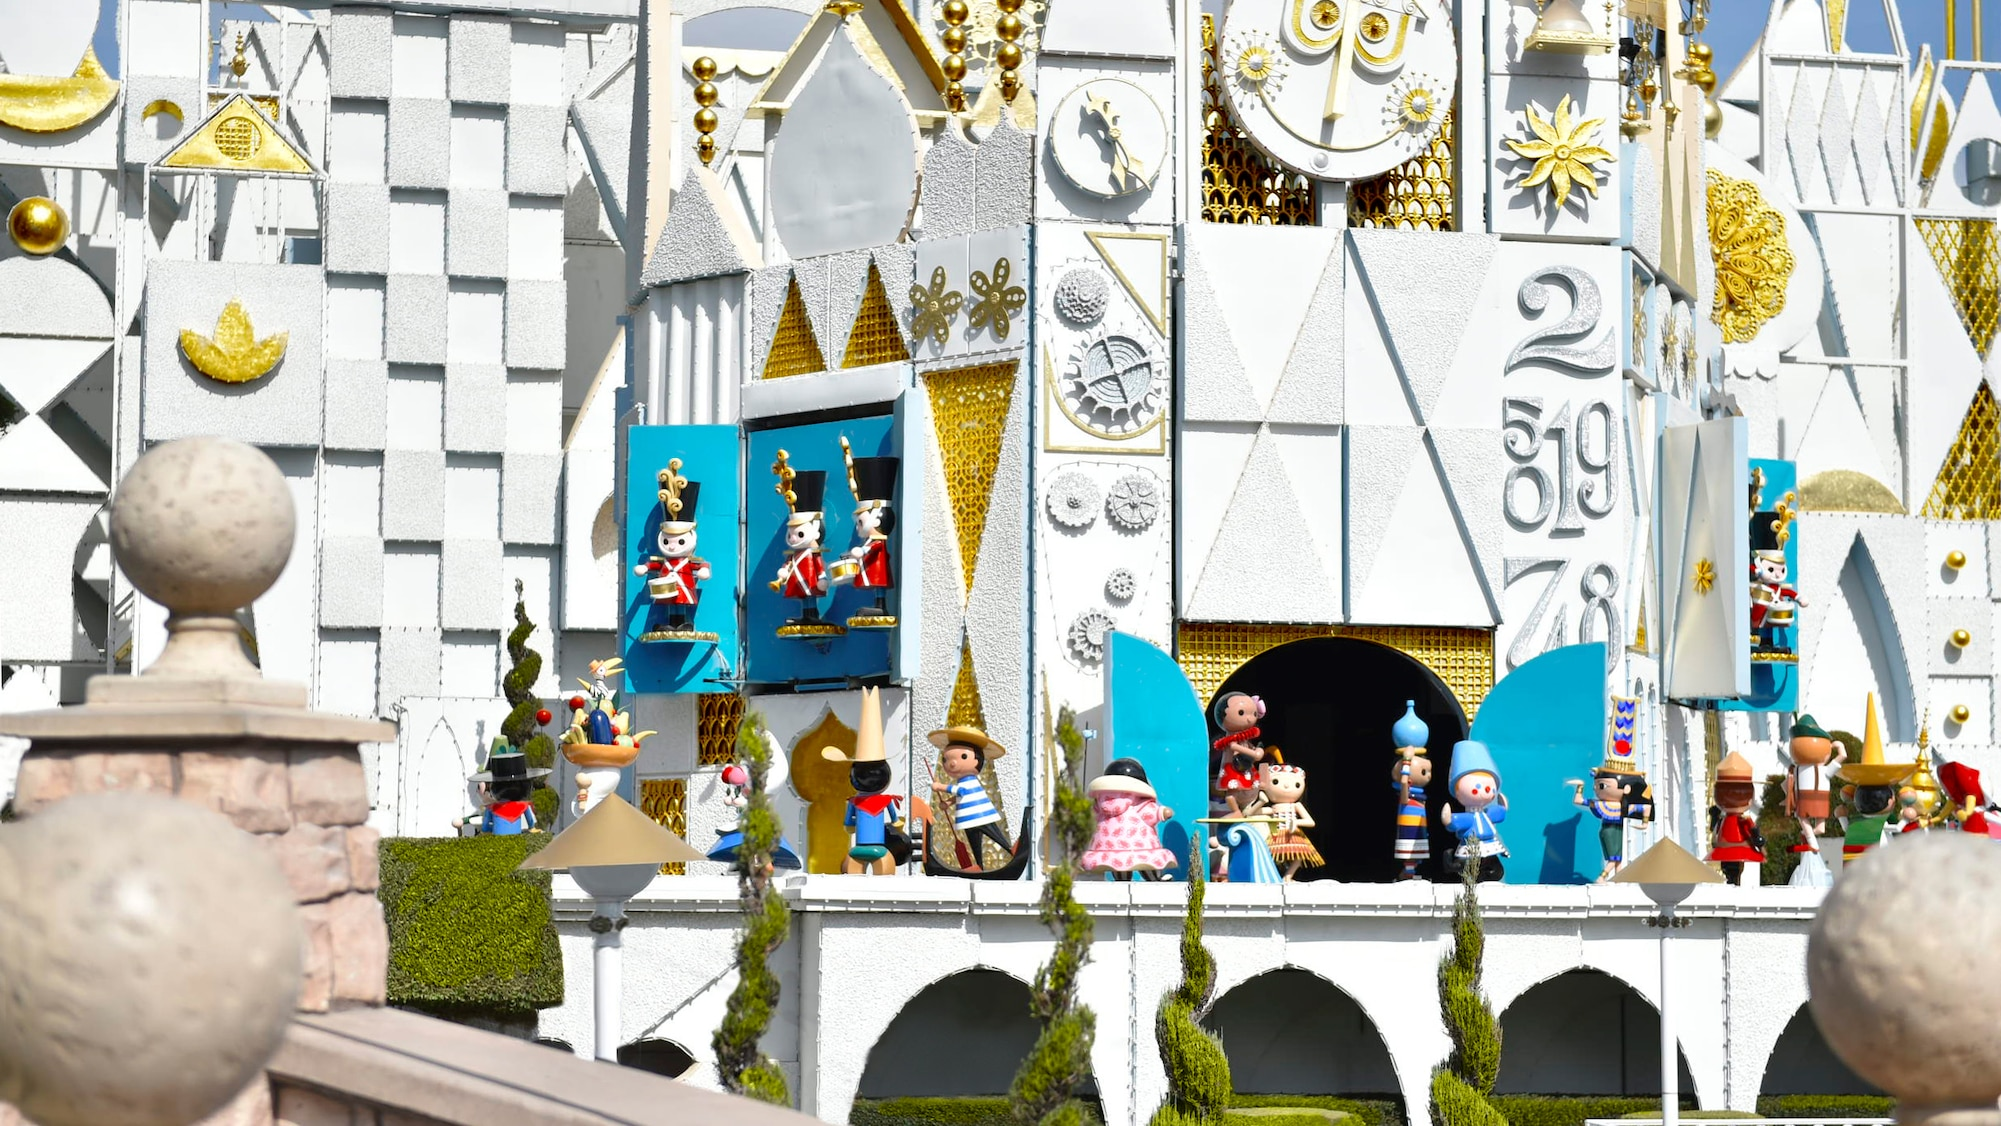 Disneyland Small World Christmas 2020 Nine Things You Didn't Know About 'it's a small world'   AllEars.Net